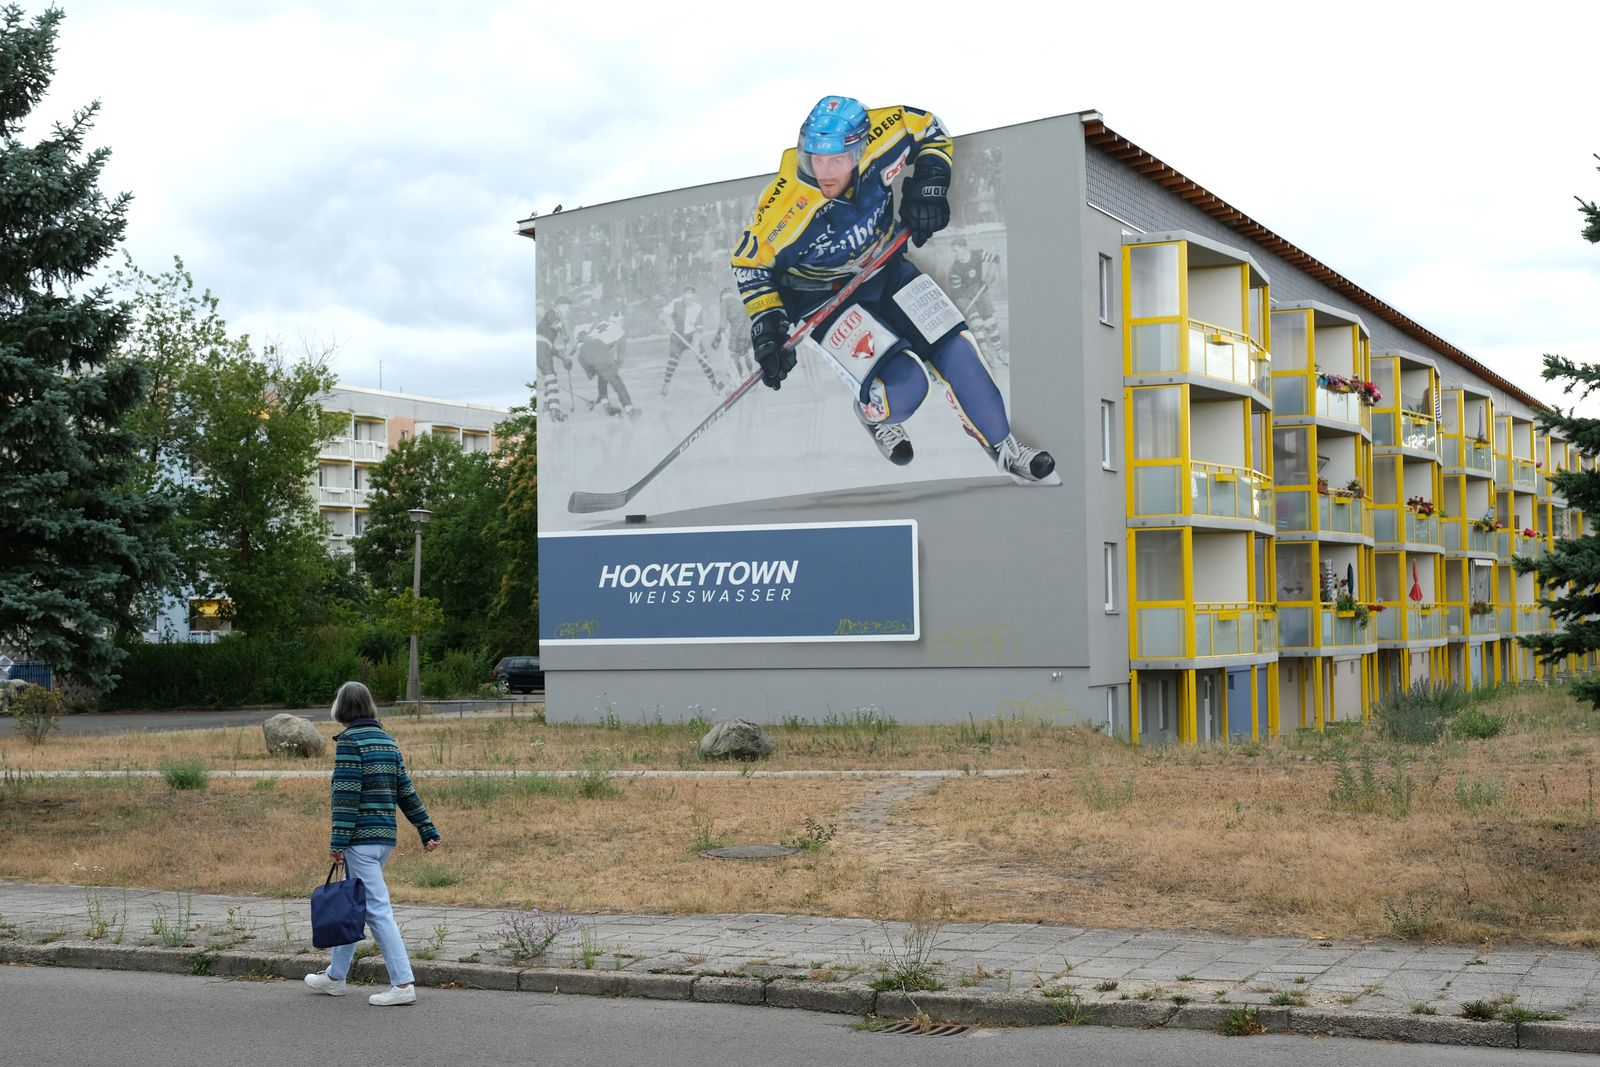 In Eastern Germany, Small Towns And Rural Communities Remain Economically Challenged